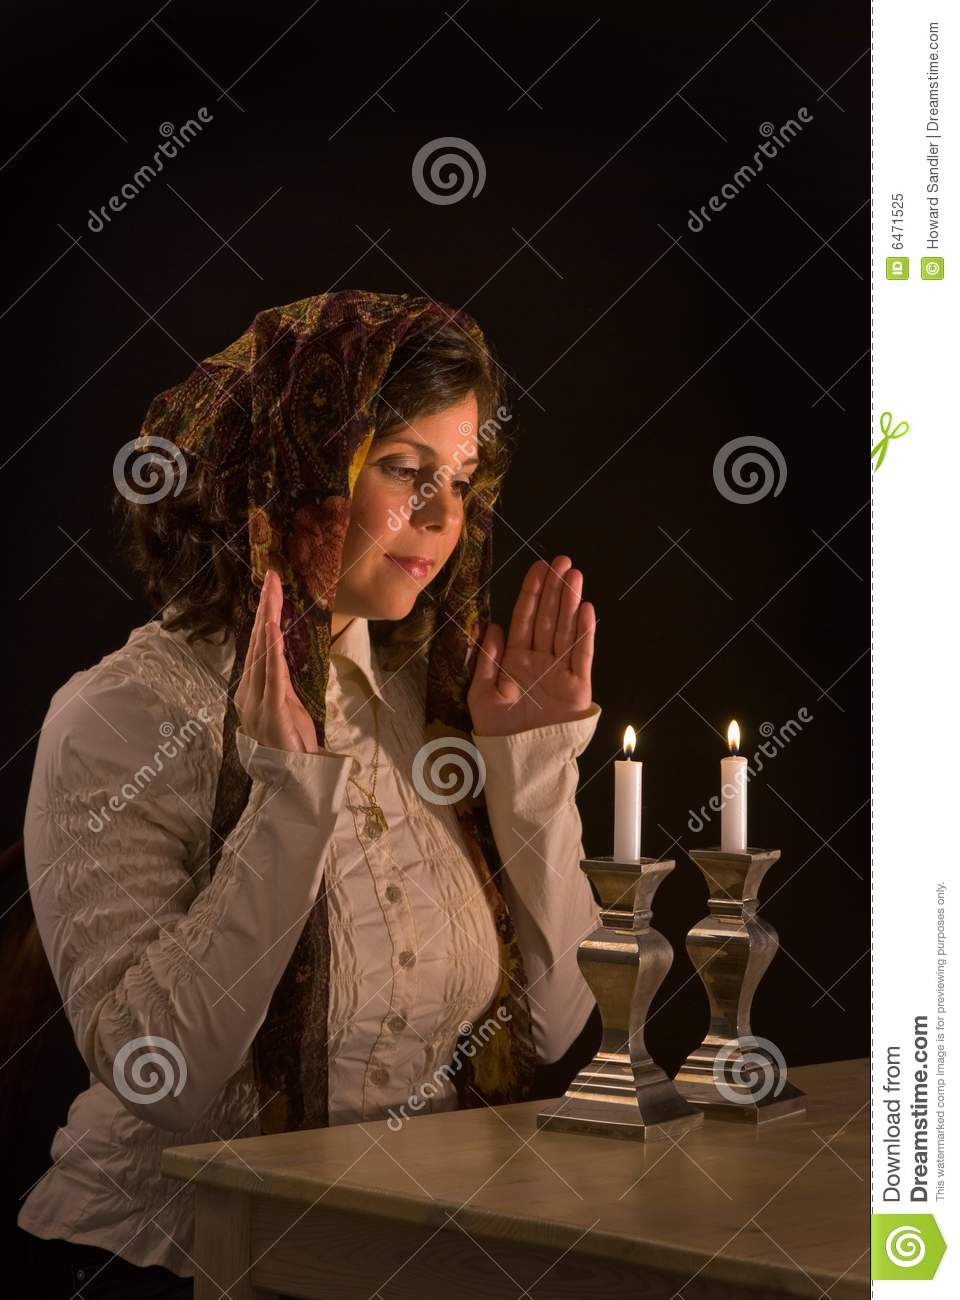 Lighting Shabbat Candles  sc 1 st  Dreamstime.com & Lighting Shabbat Candles stock image. Image of attractive - 6471525